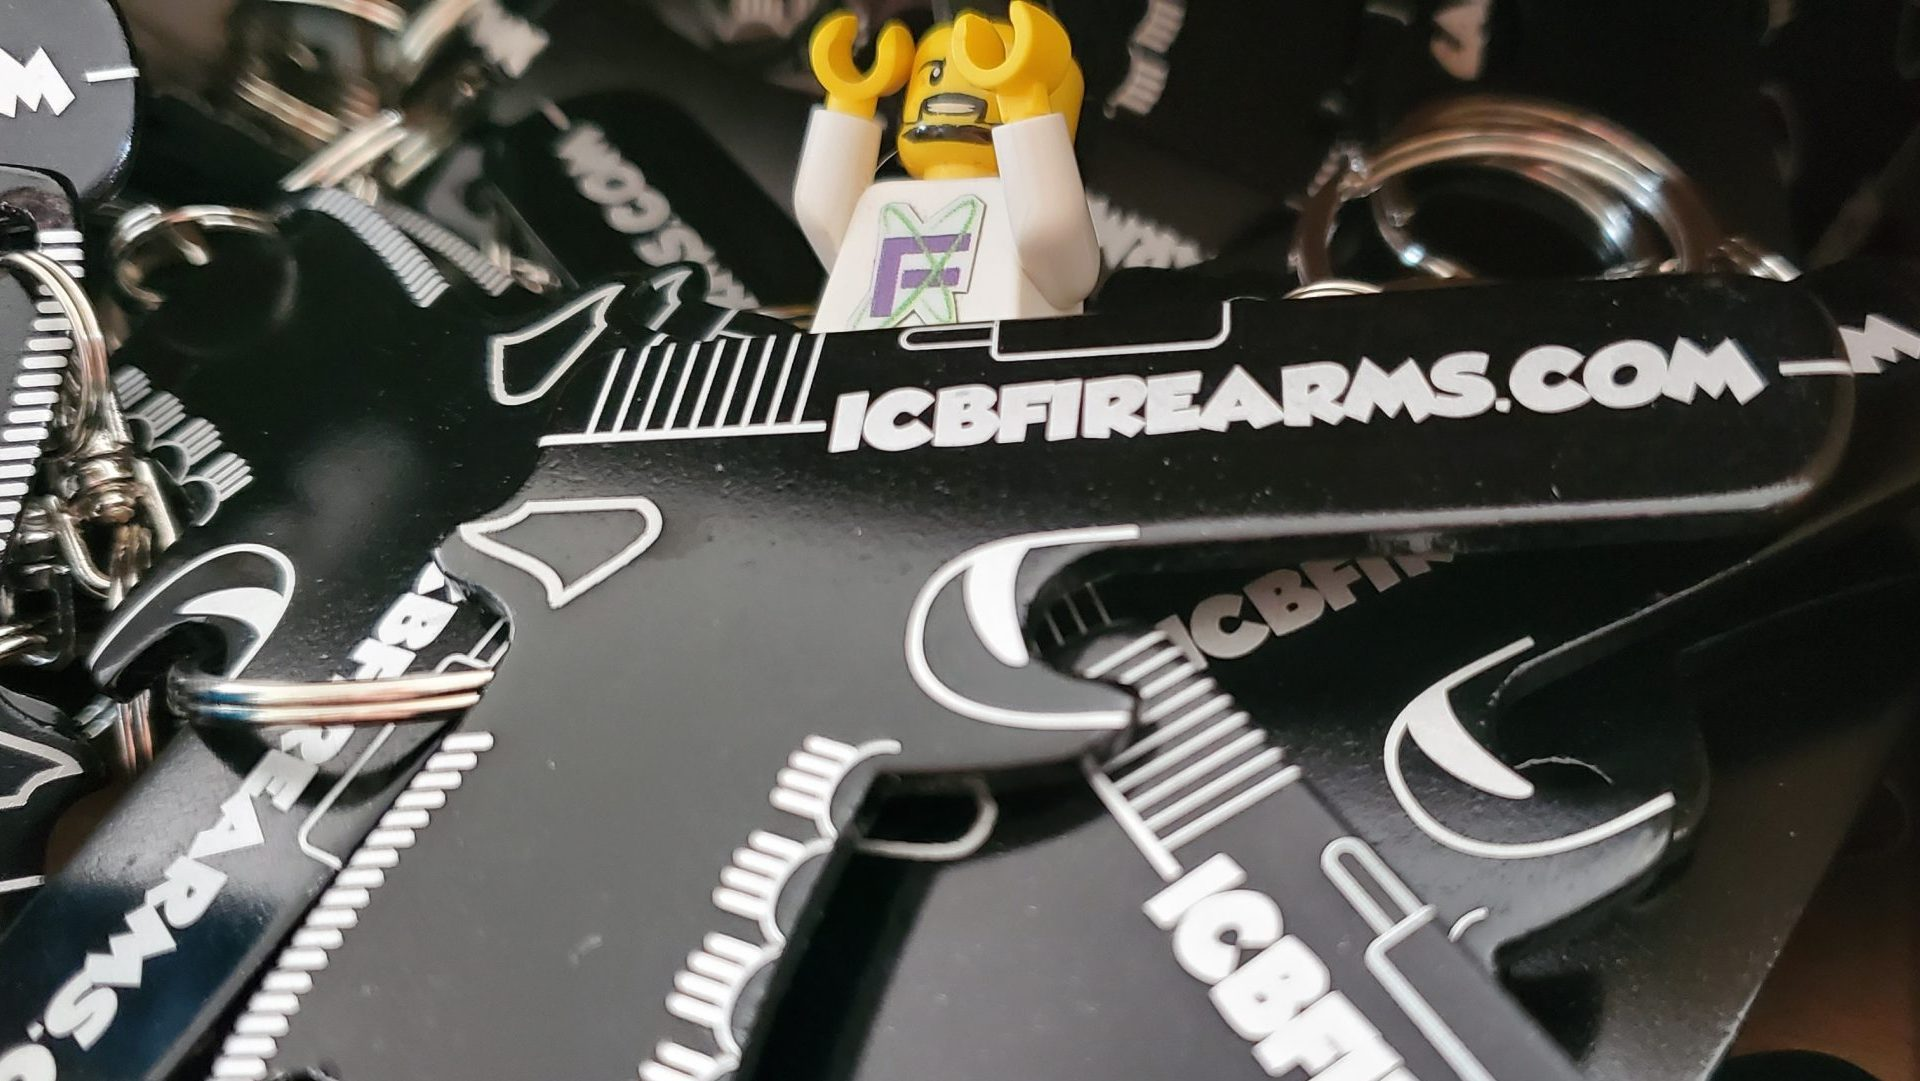 ICB Firearms - Gun Key chain Bottle Opener Lego Photo 06